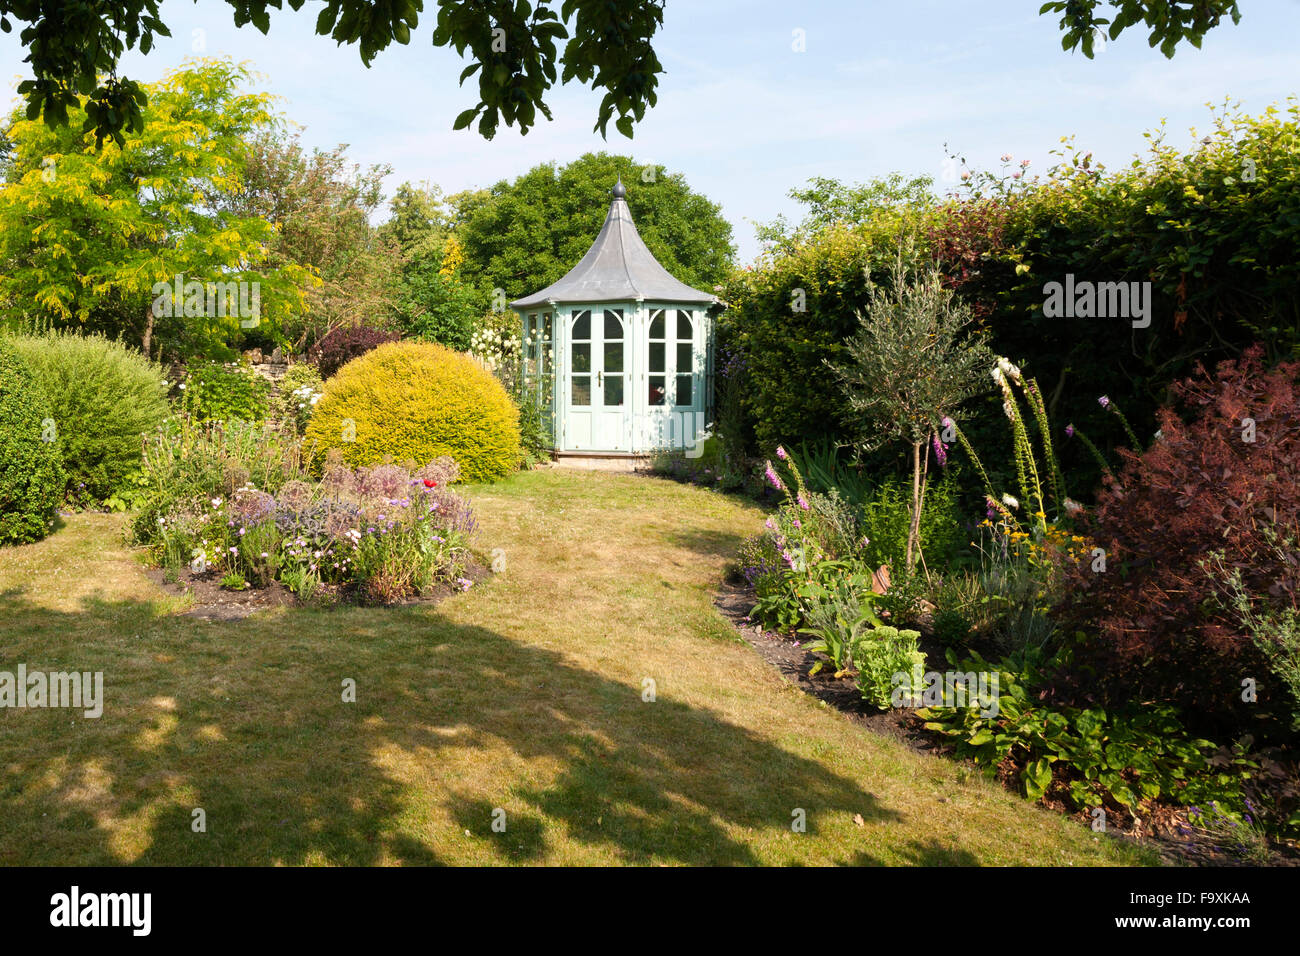 UK gardens. An octagonal painted summerhouse in a summer garden. - Stock Image